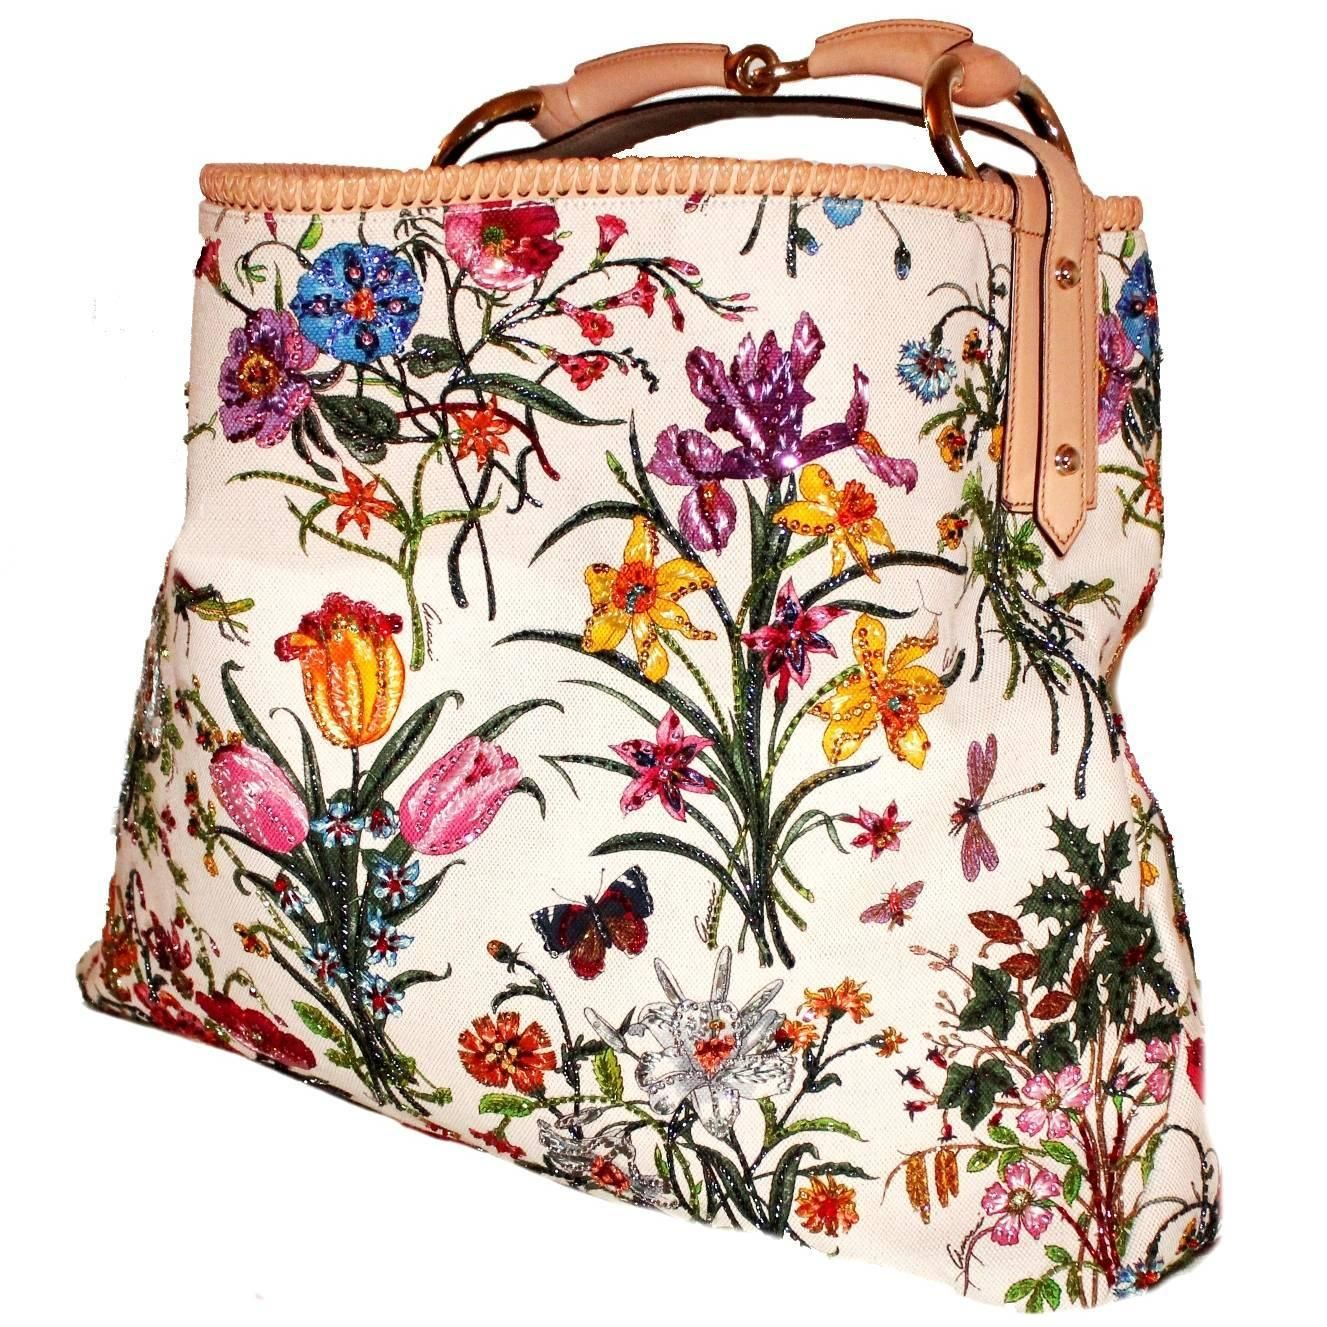 Gucci By Tom Ford Embroided Horsebit Bag znhuAW0